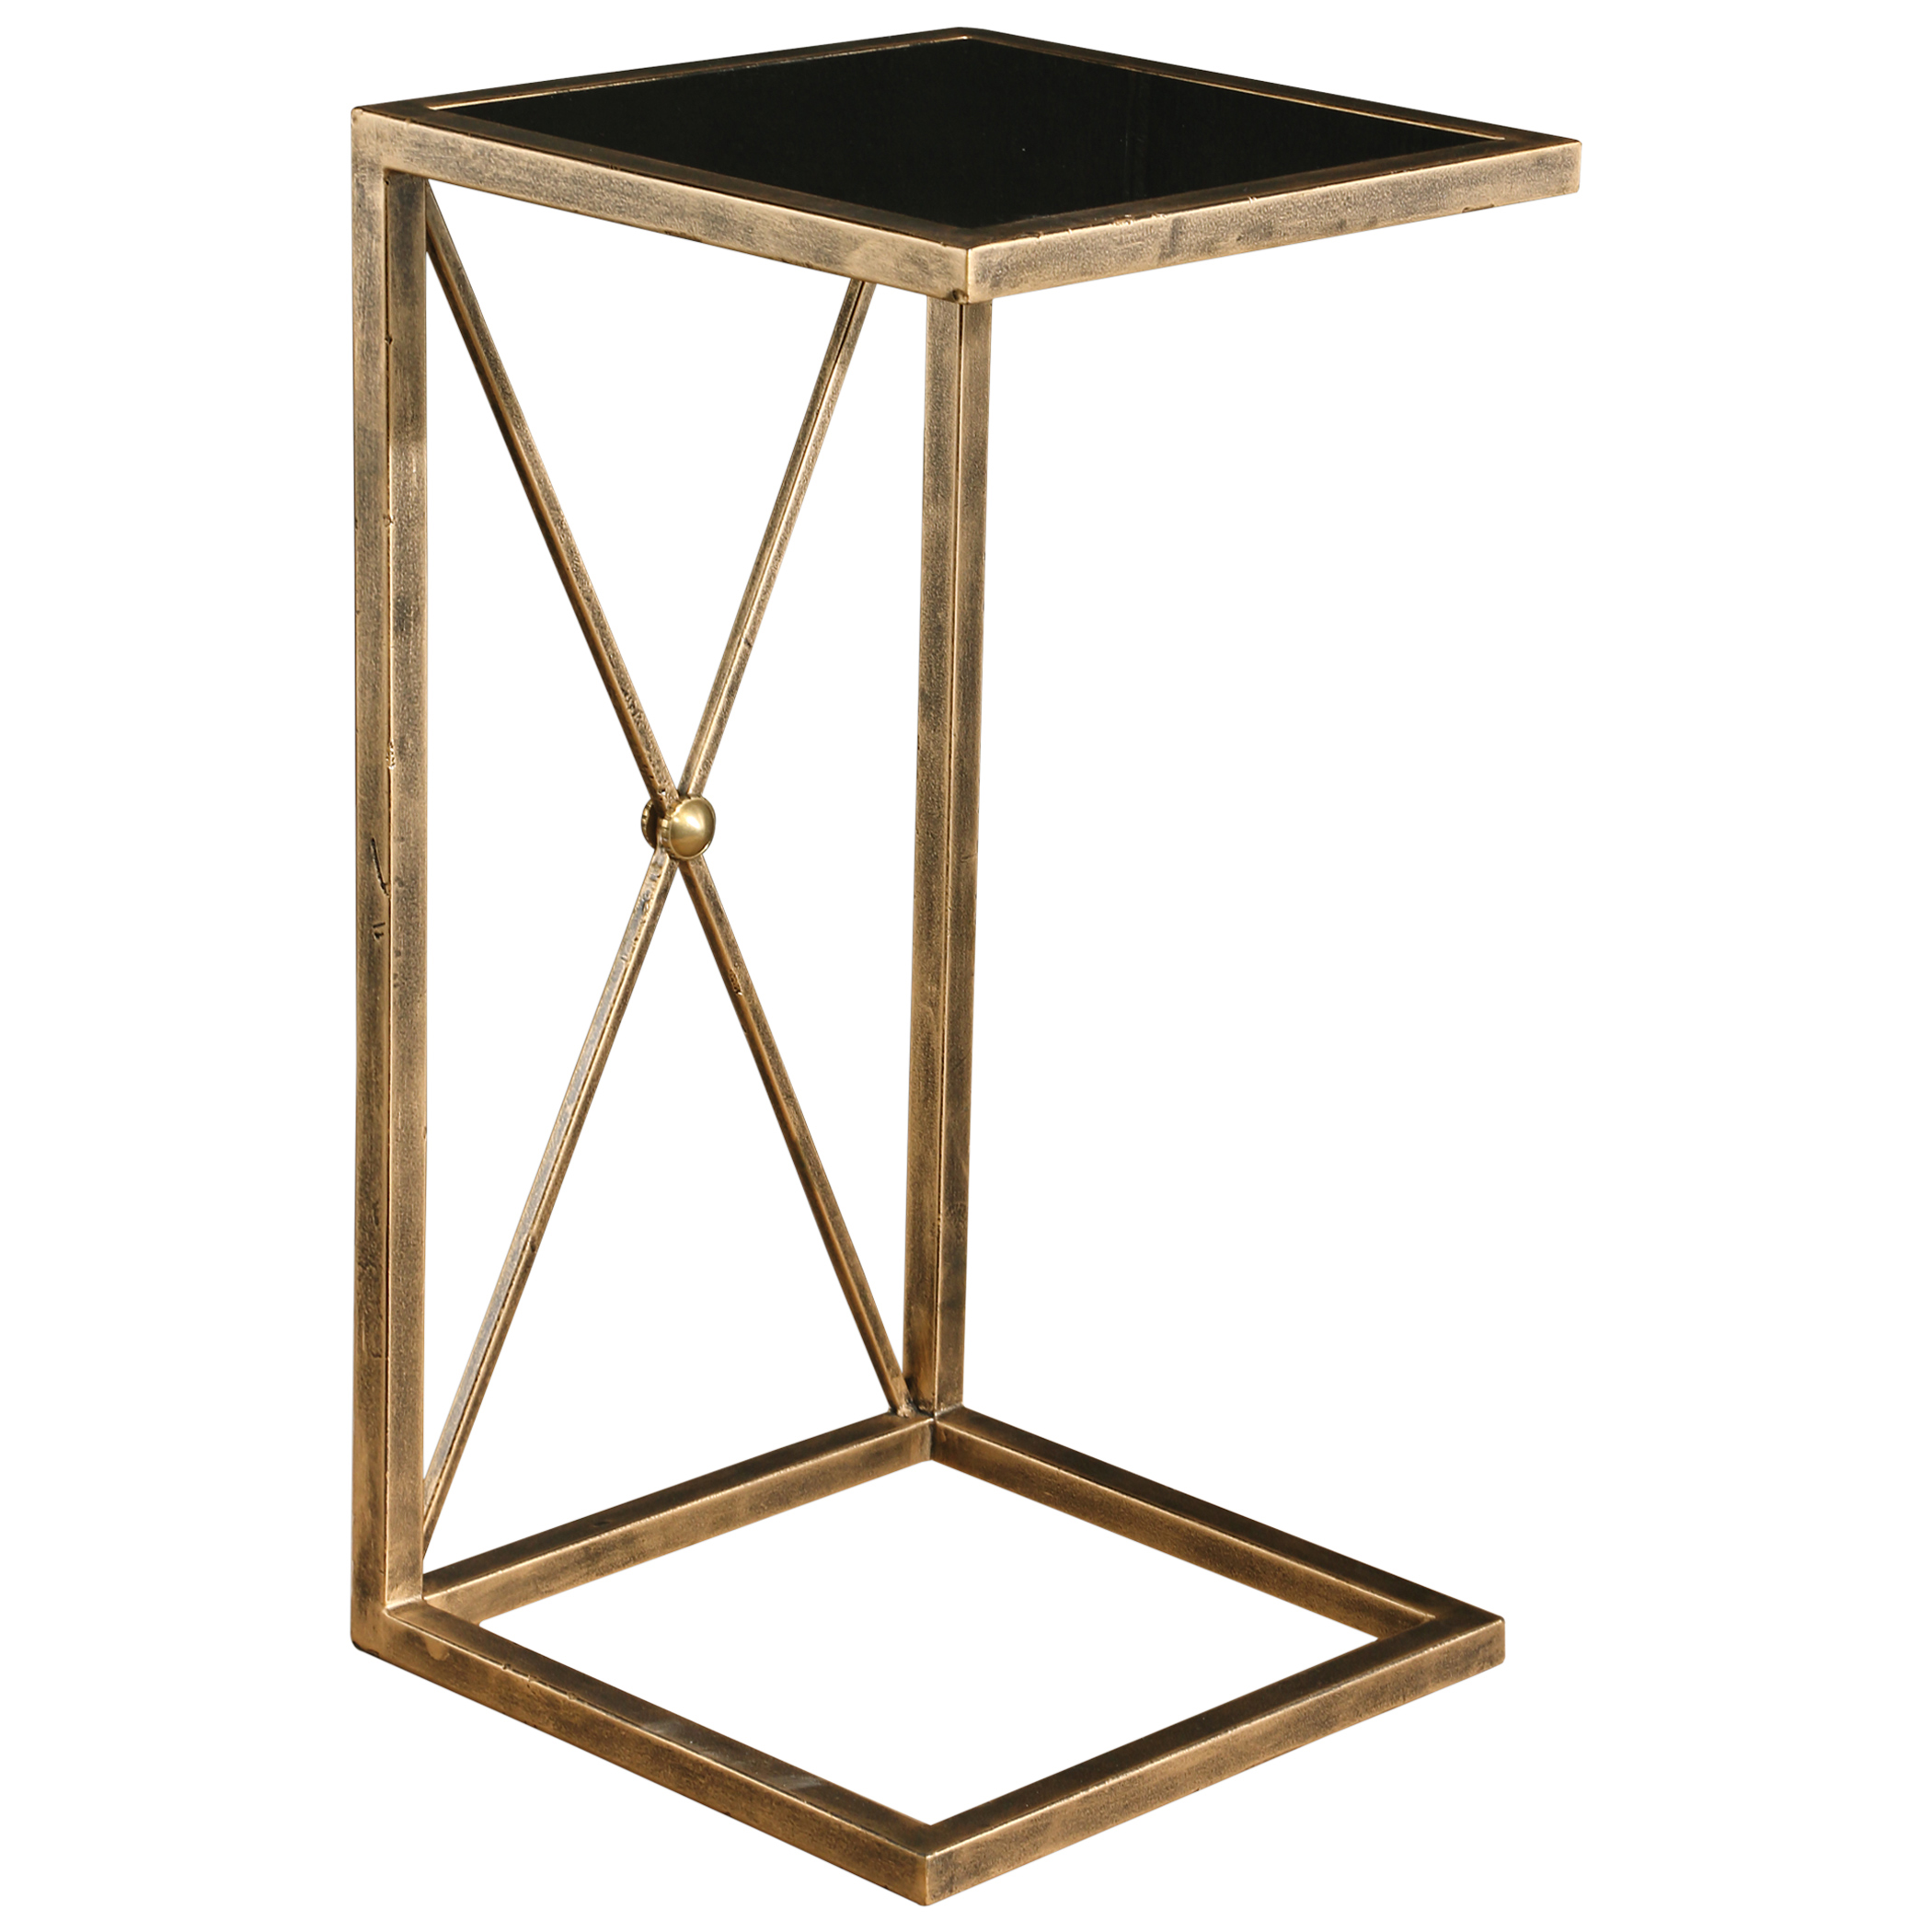 discount designer end tables modern lexington modern classic antique gold black glass side table designer end tables eclectic kathy kuo home